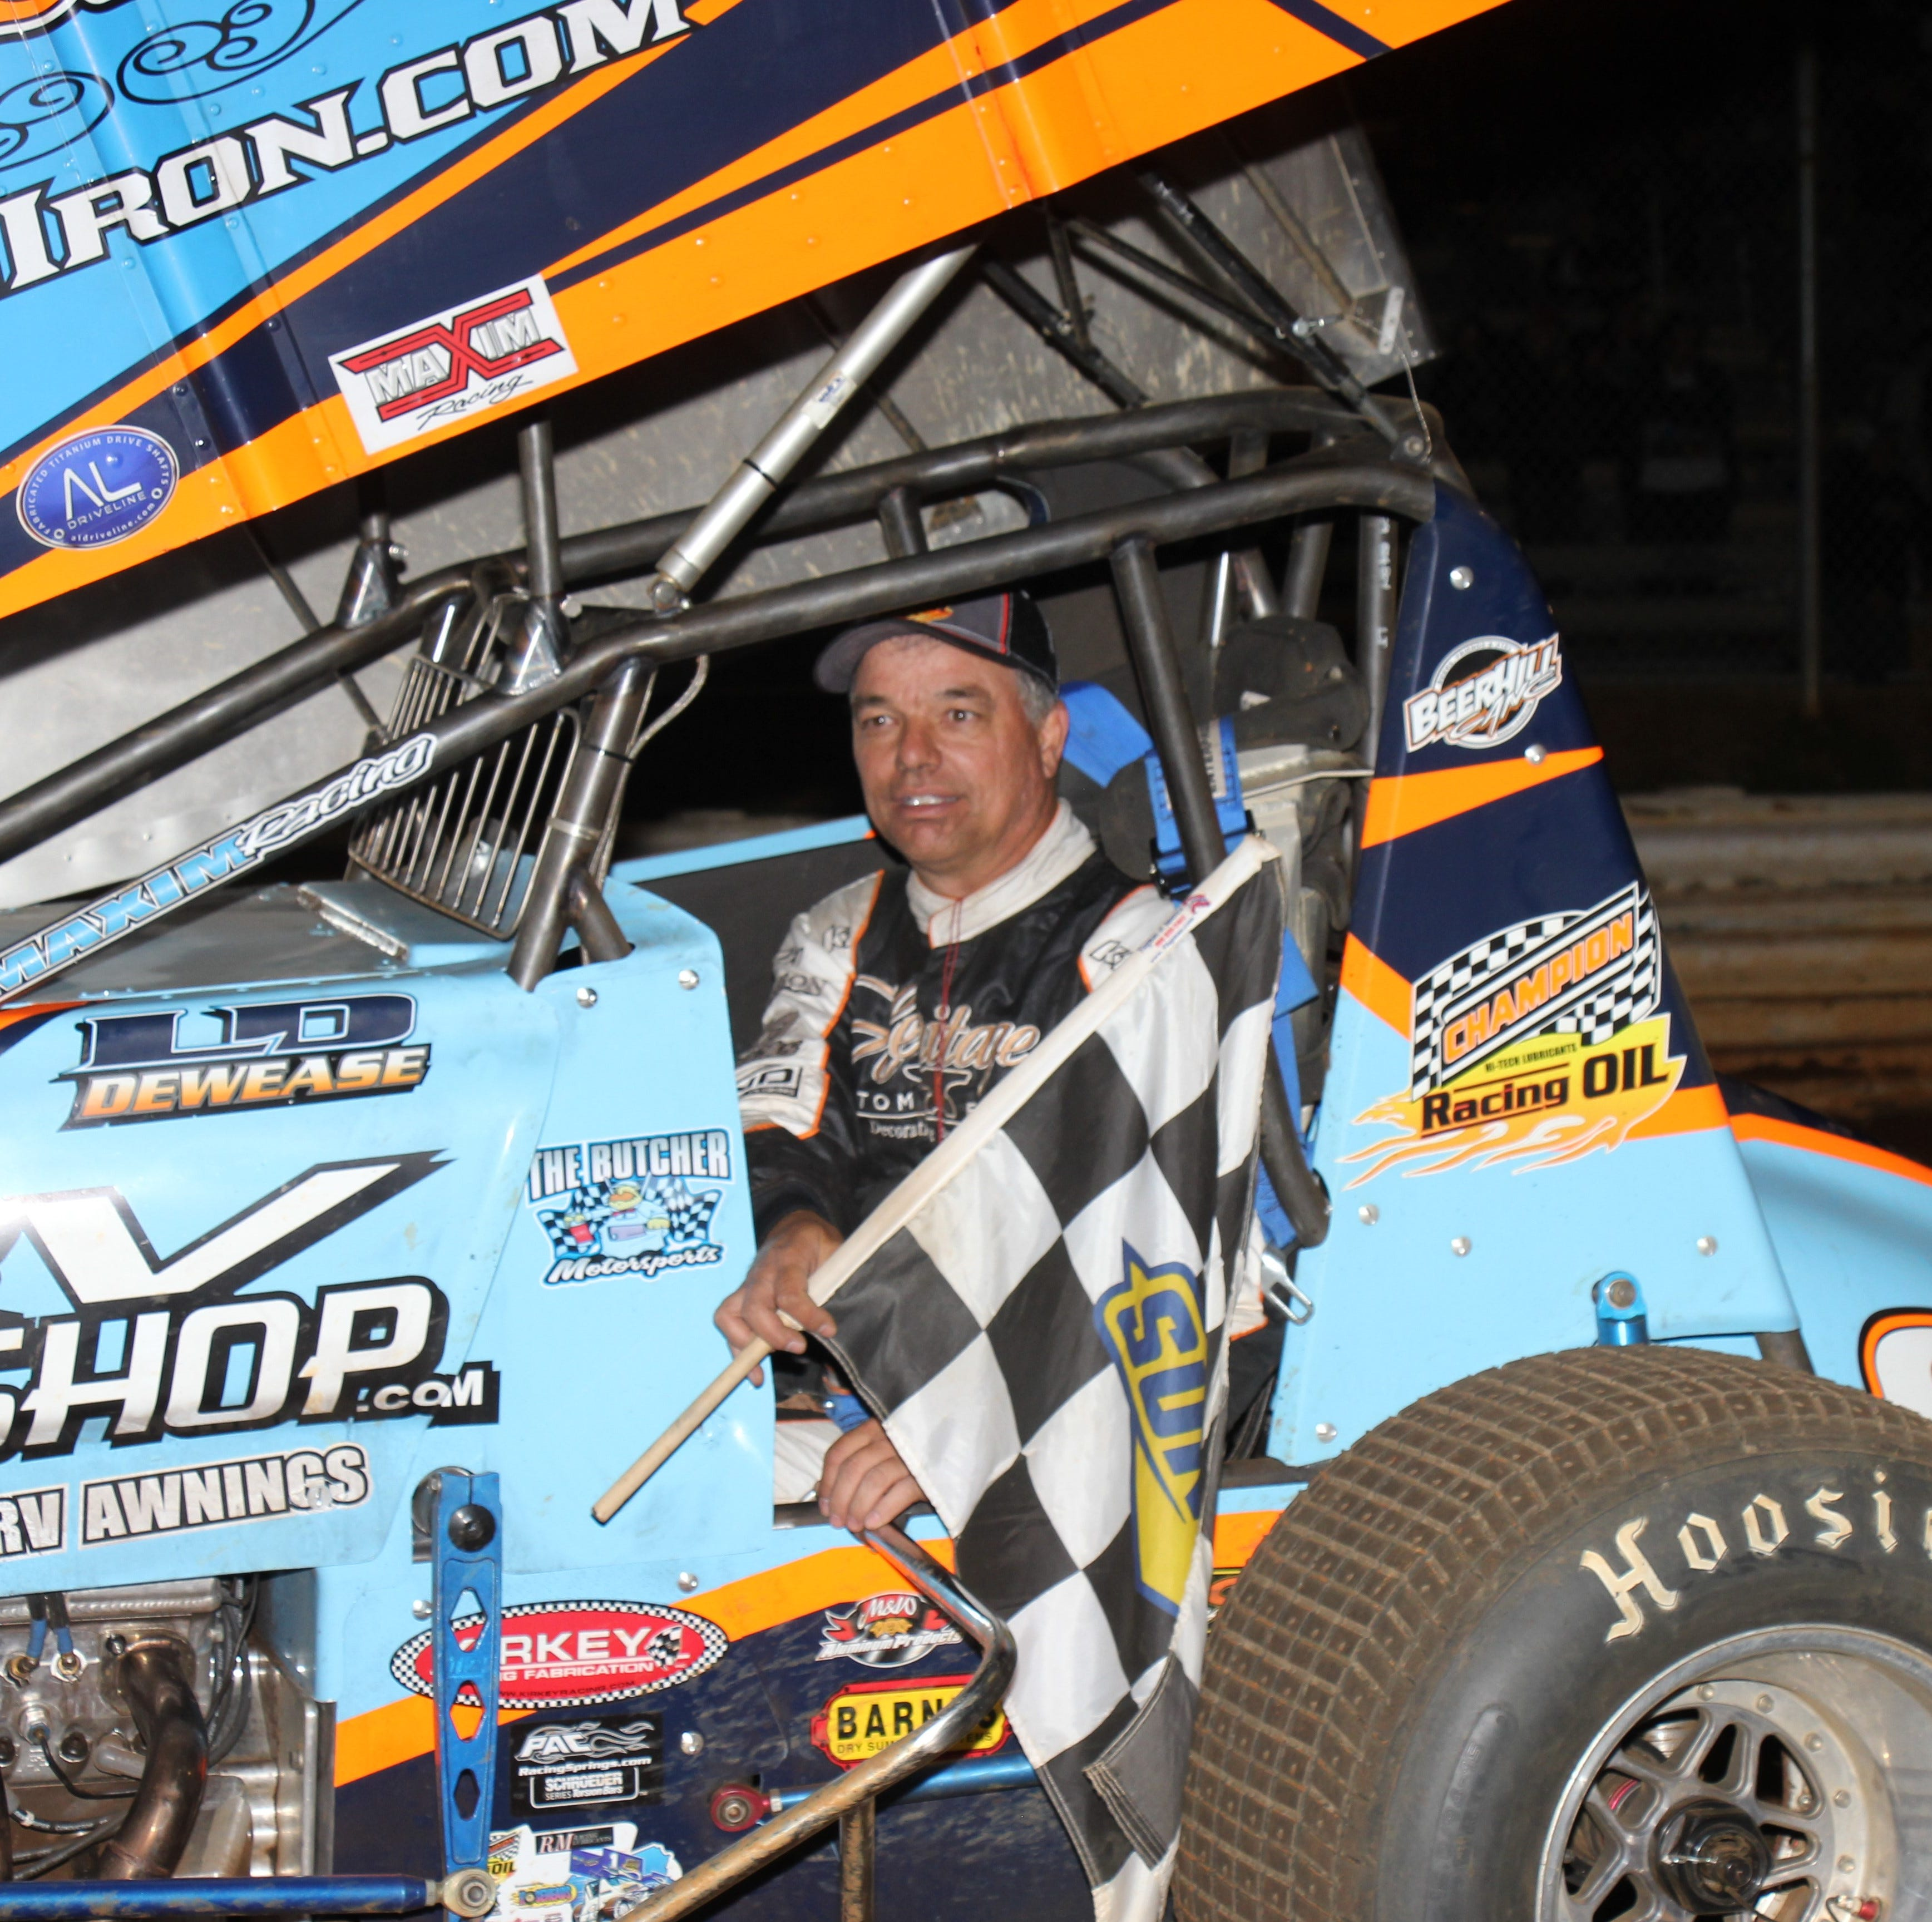 DIRT-TRACK RACING: Lance Dewease beats Outlaws, wins $17,000 top prize at Williams Grove